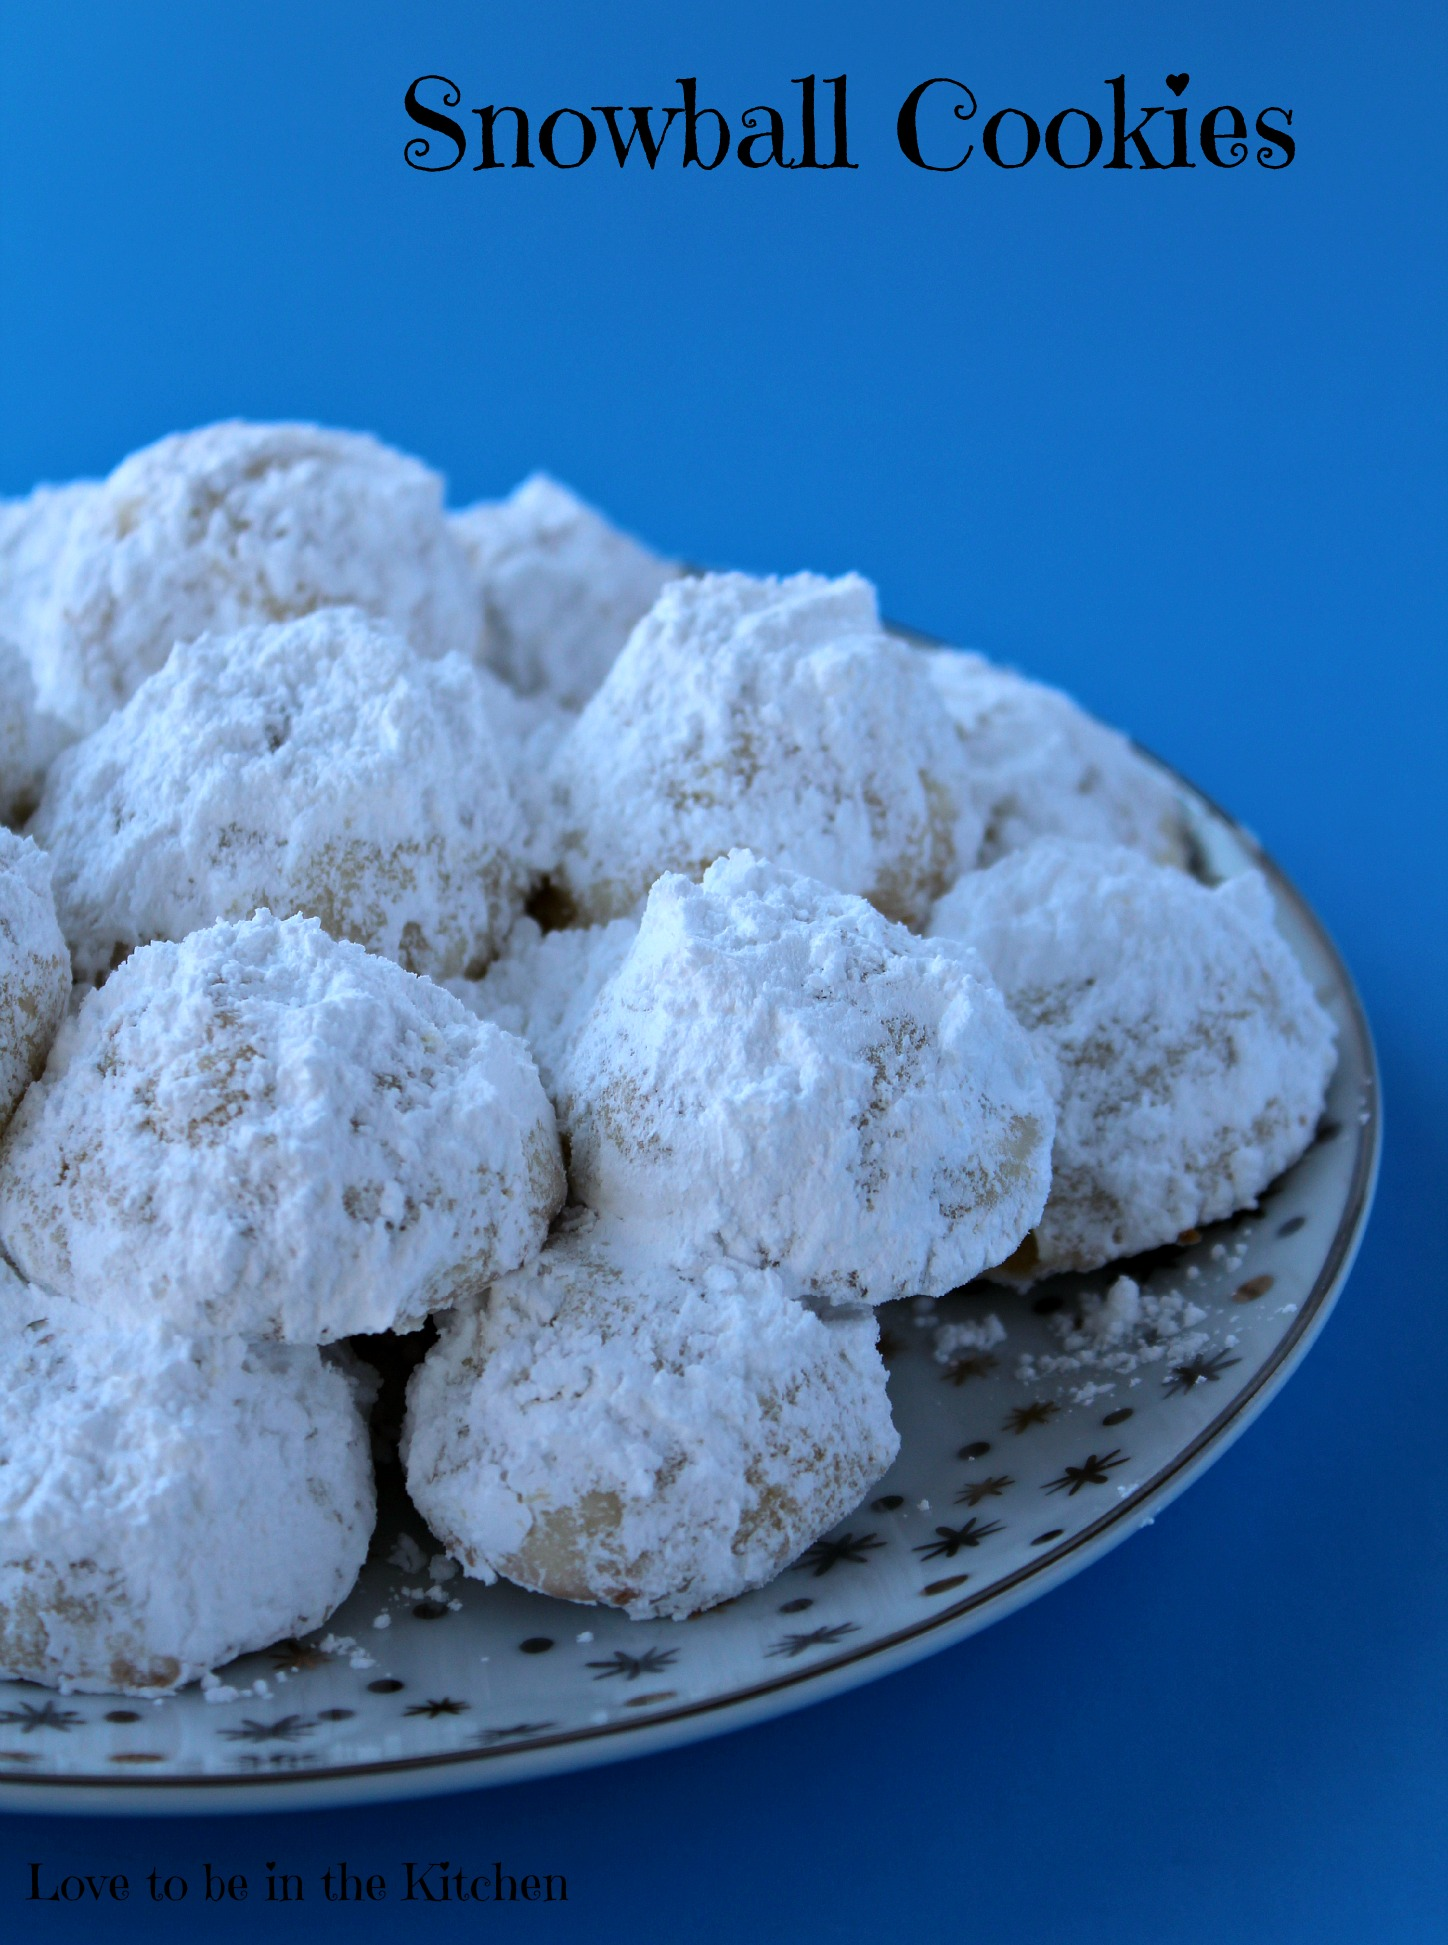 ... Snowball Cookies look like mini snowballs! The perfect Christmas